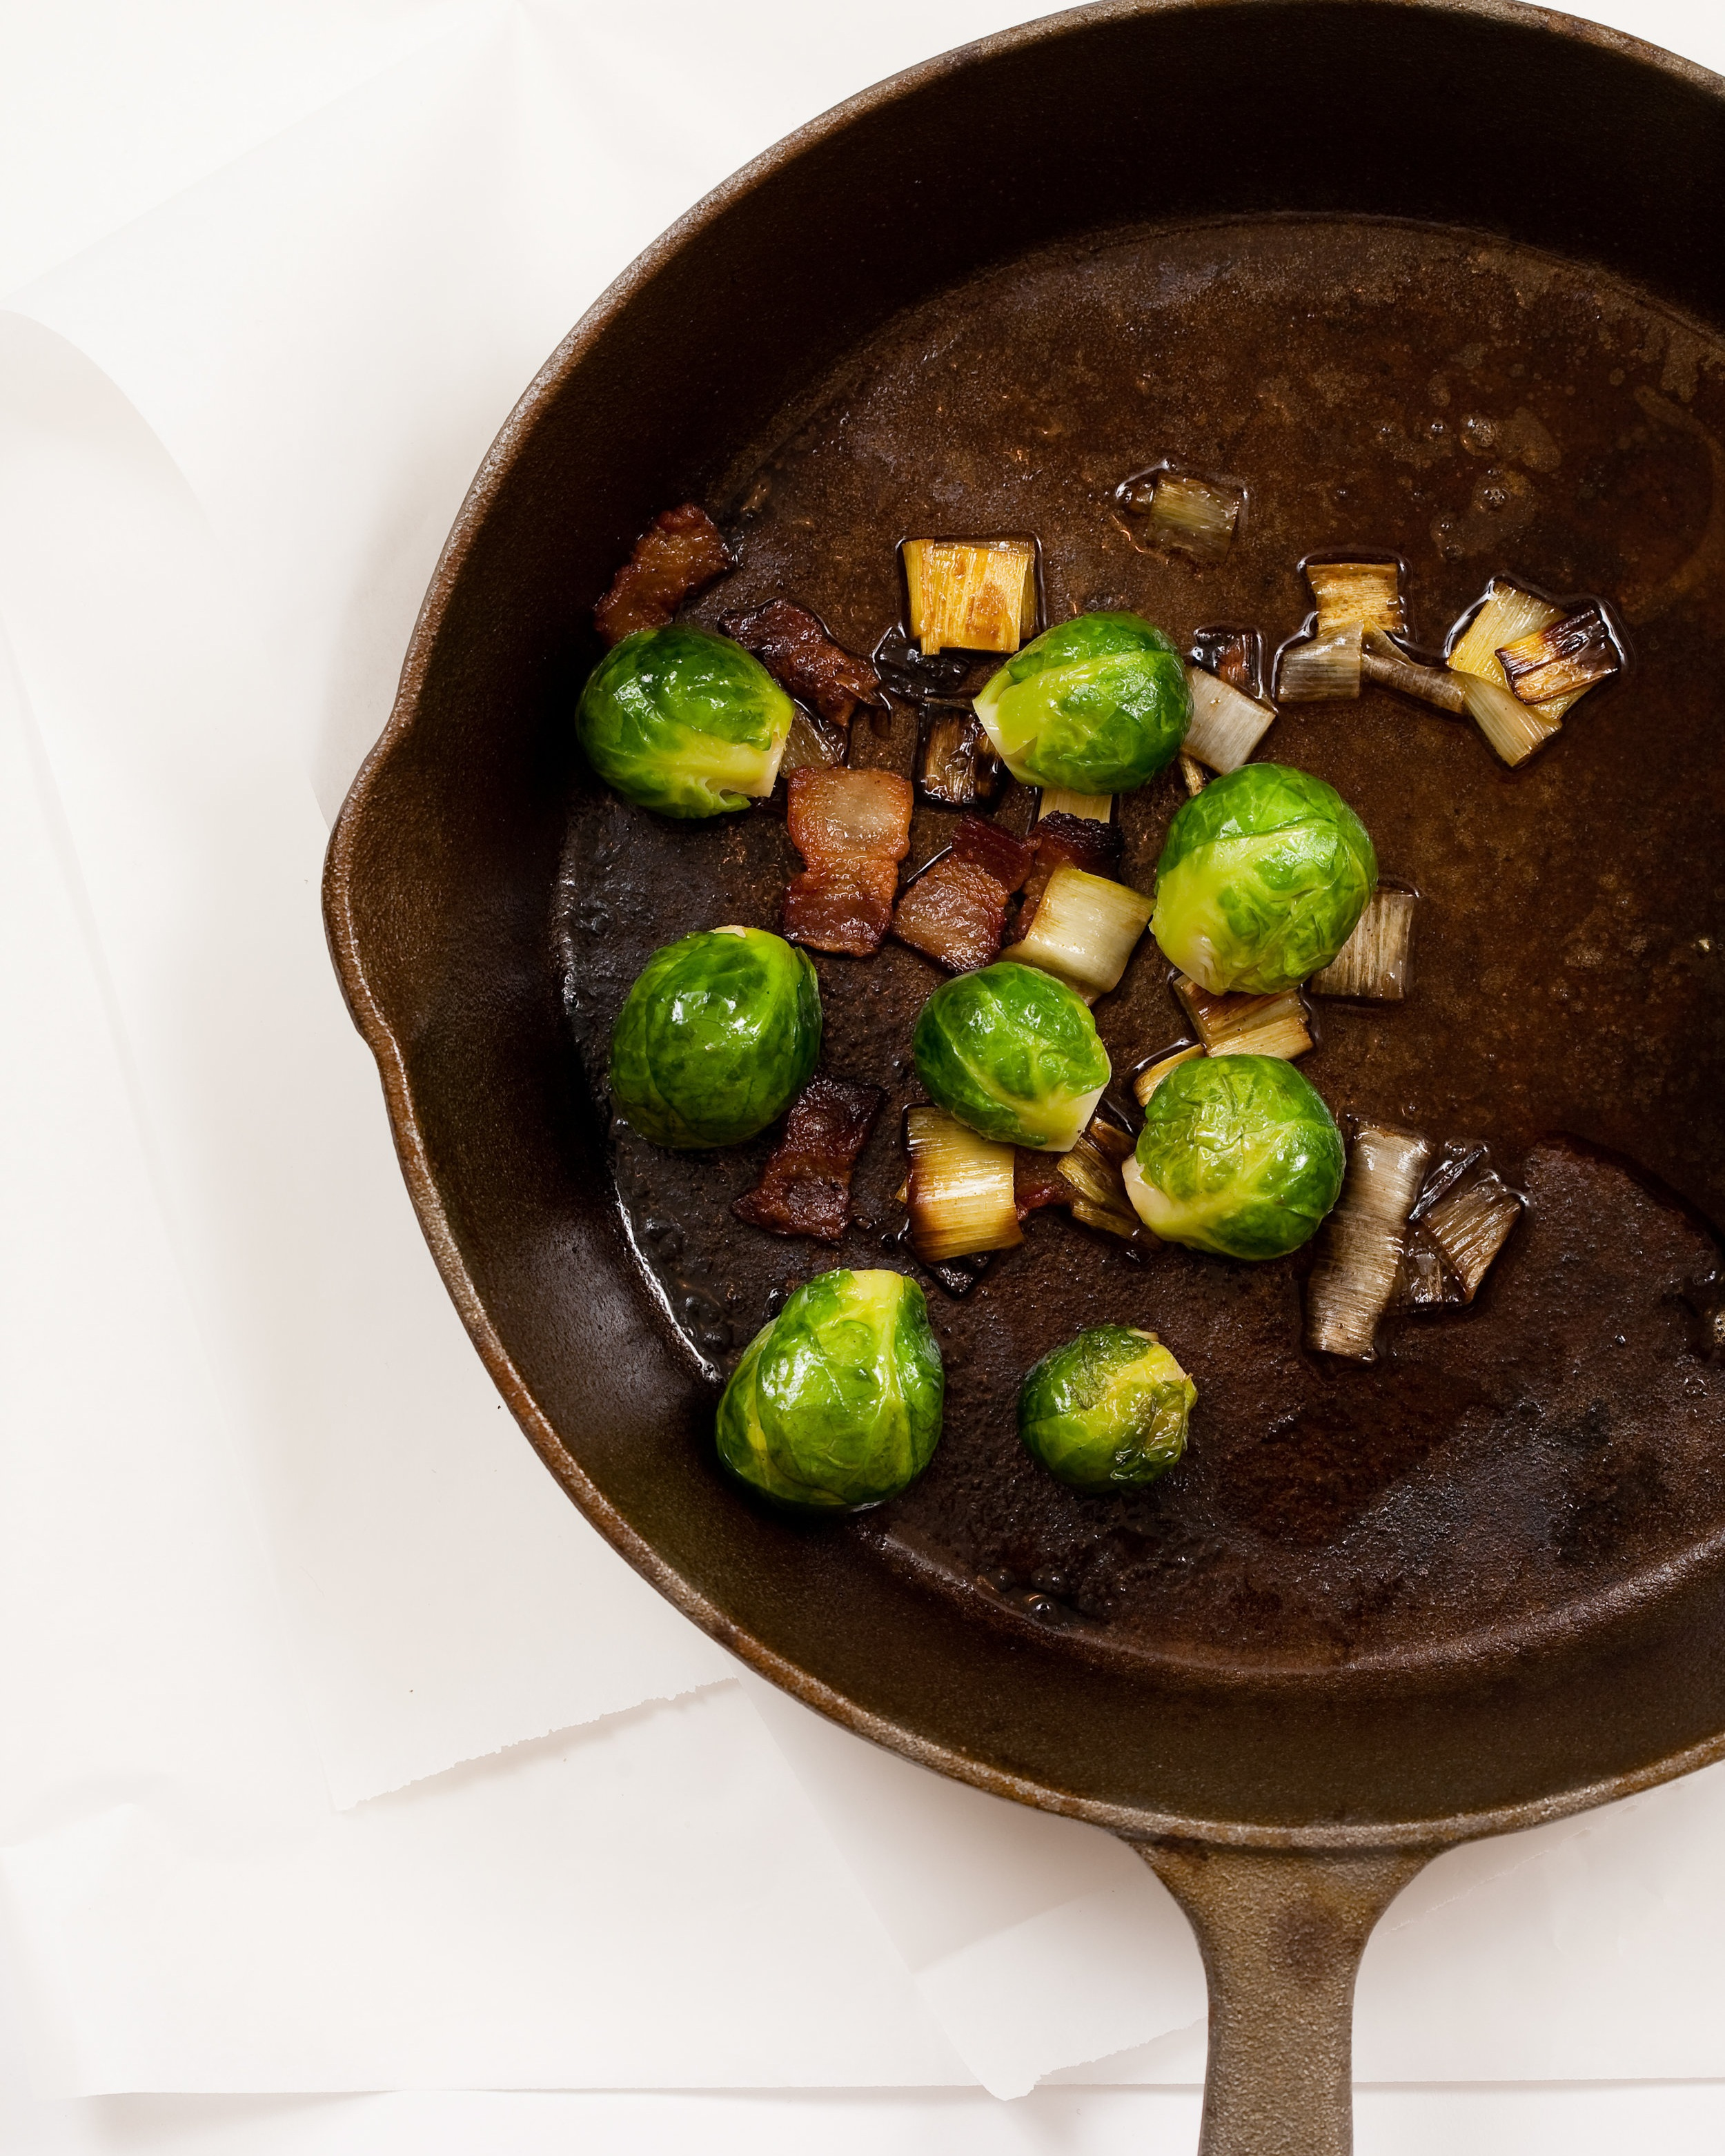 Brussels sprouts with bacon and leek